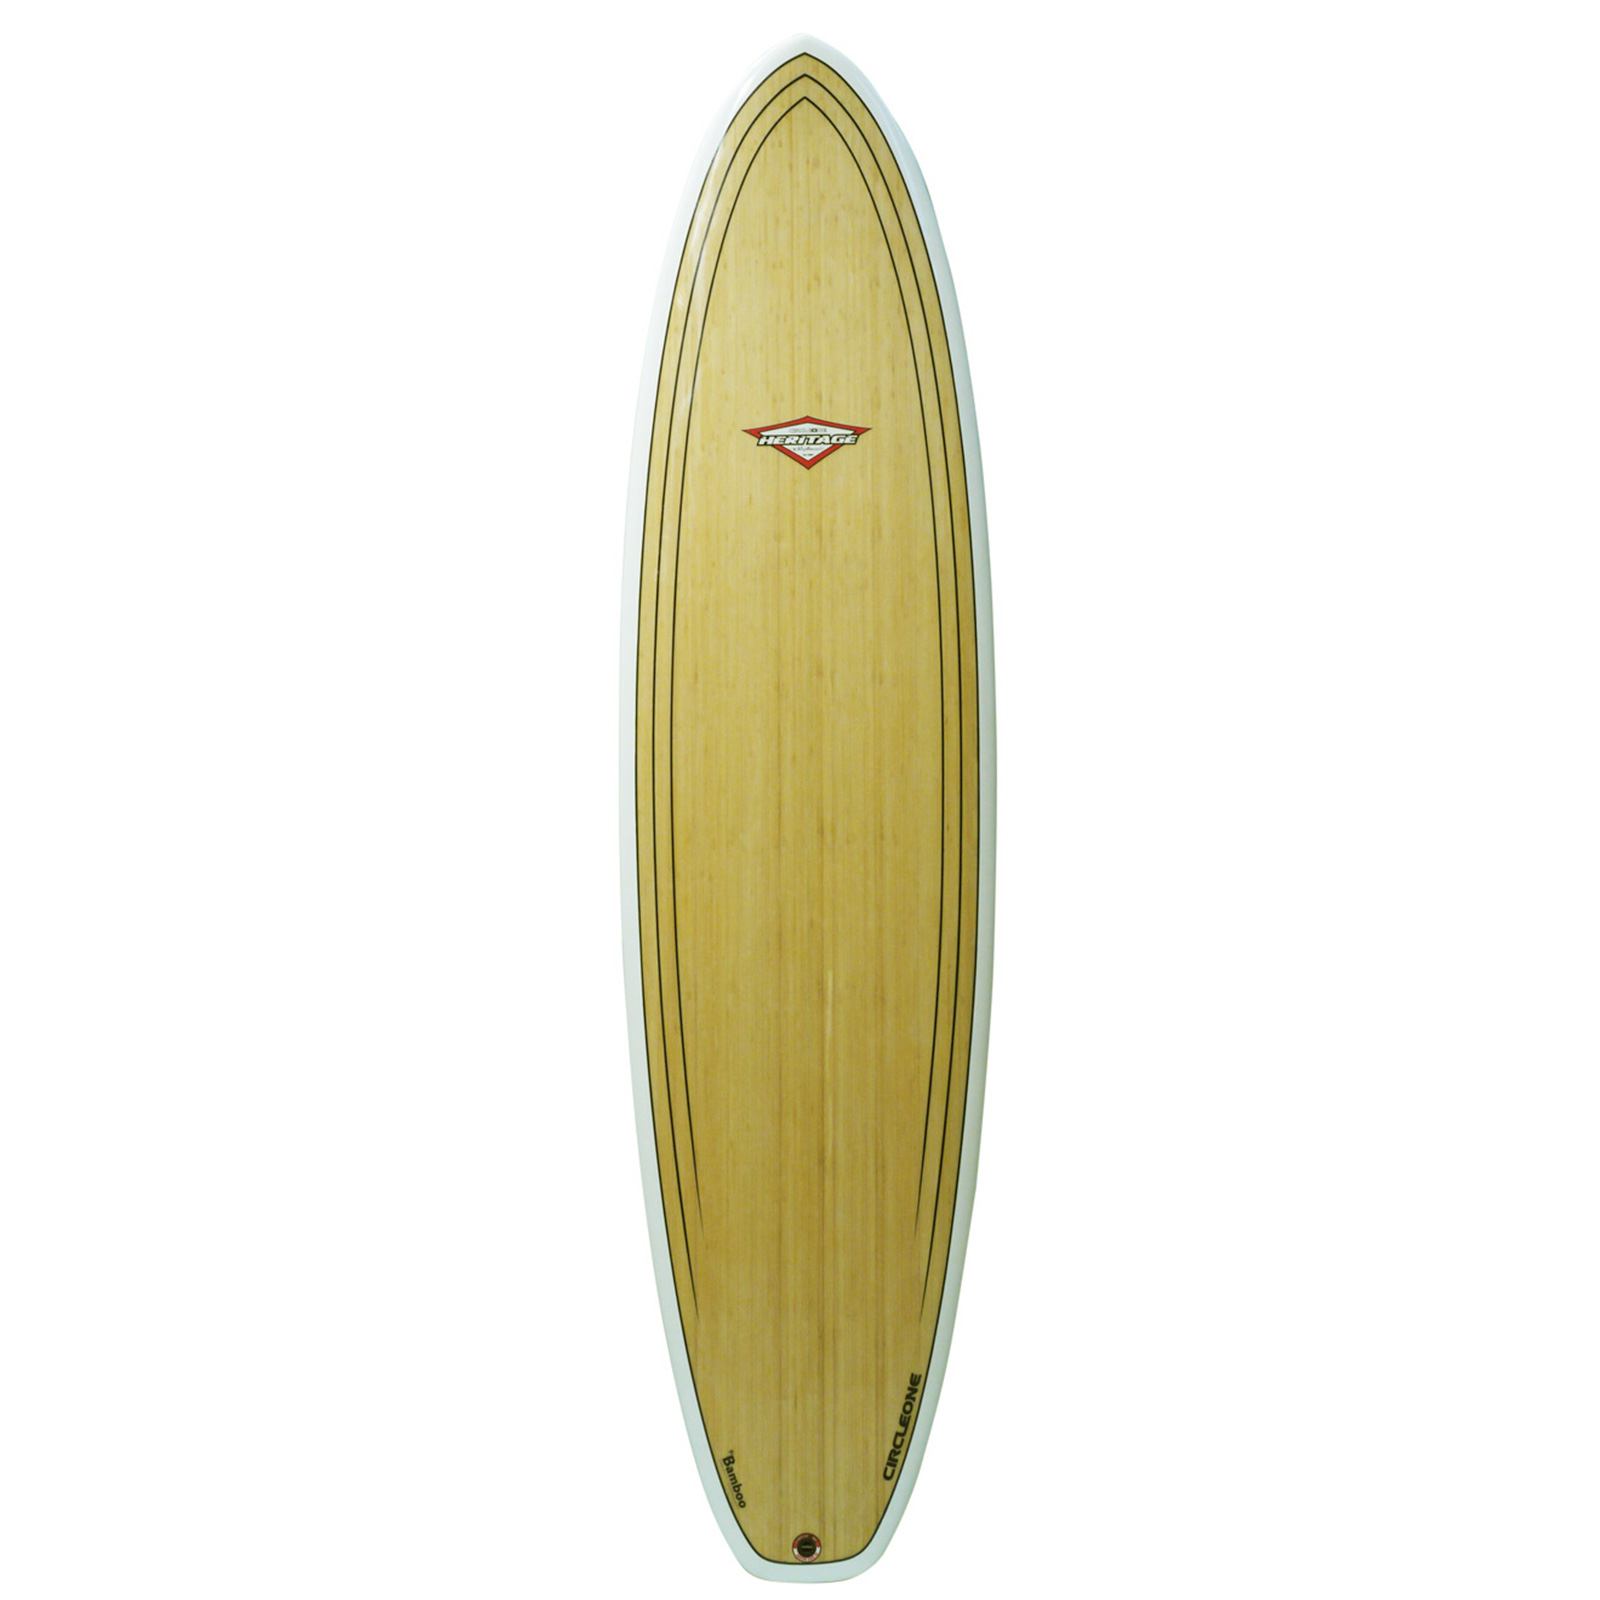 An image of the 7ft 3inch bamboo surfboard deck. 4828cf727